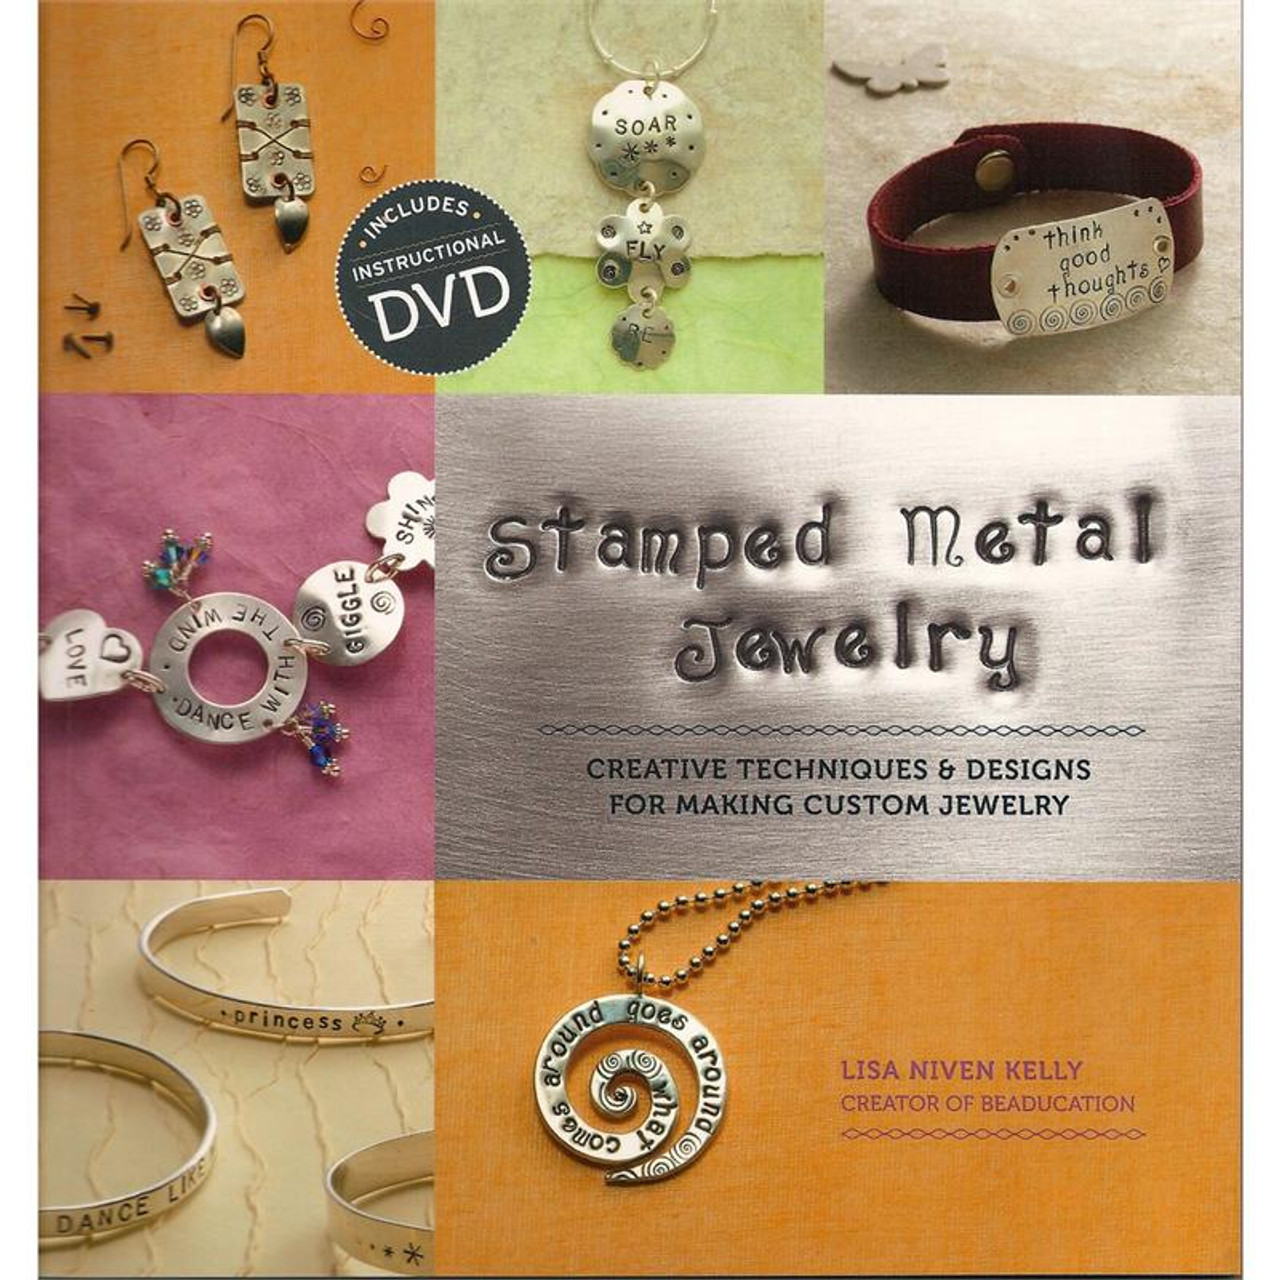 Creative Custom Jewelry Home: Stamped Metal Jewelry: Creative Techniques And Designs For